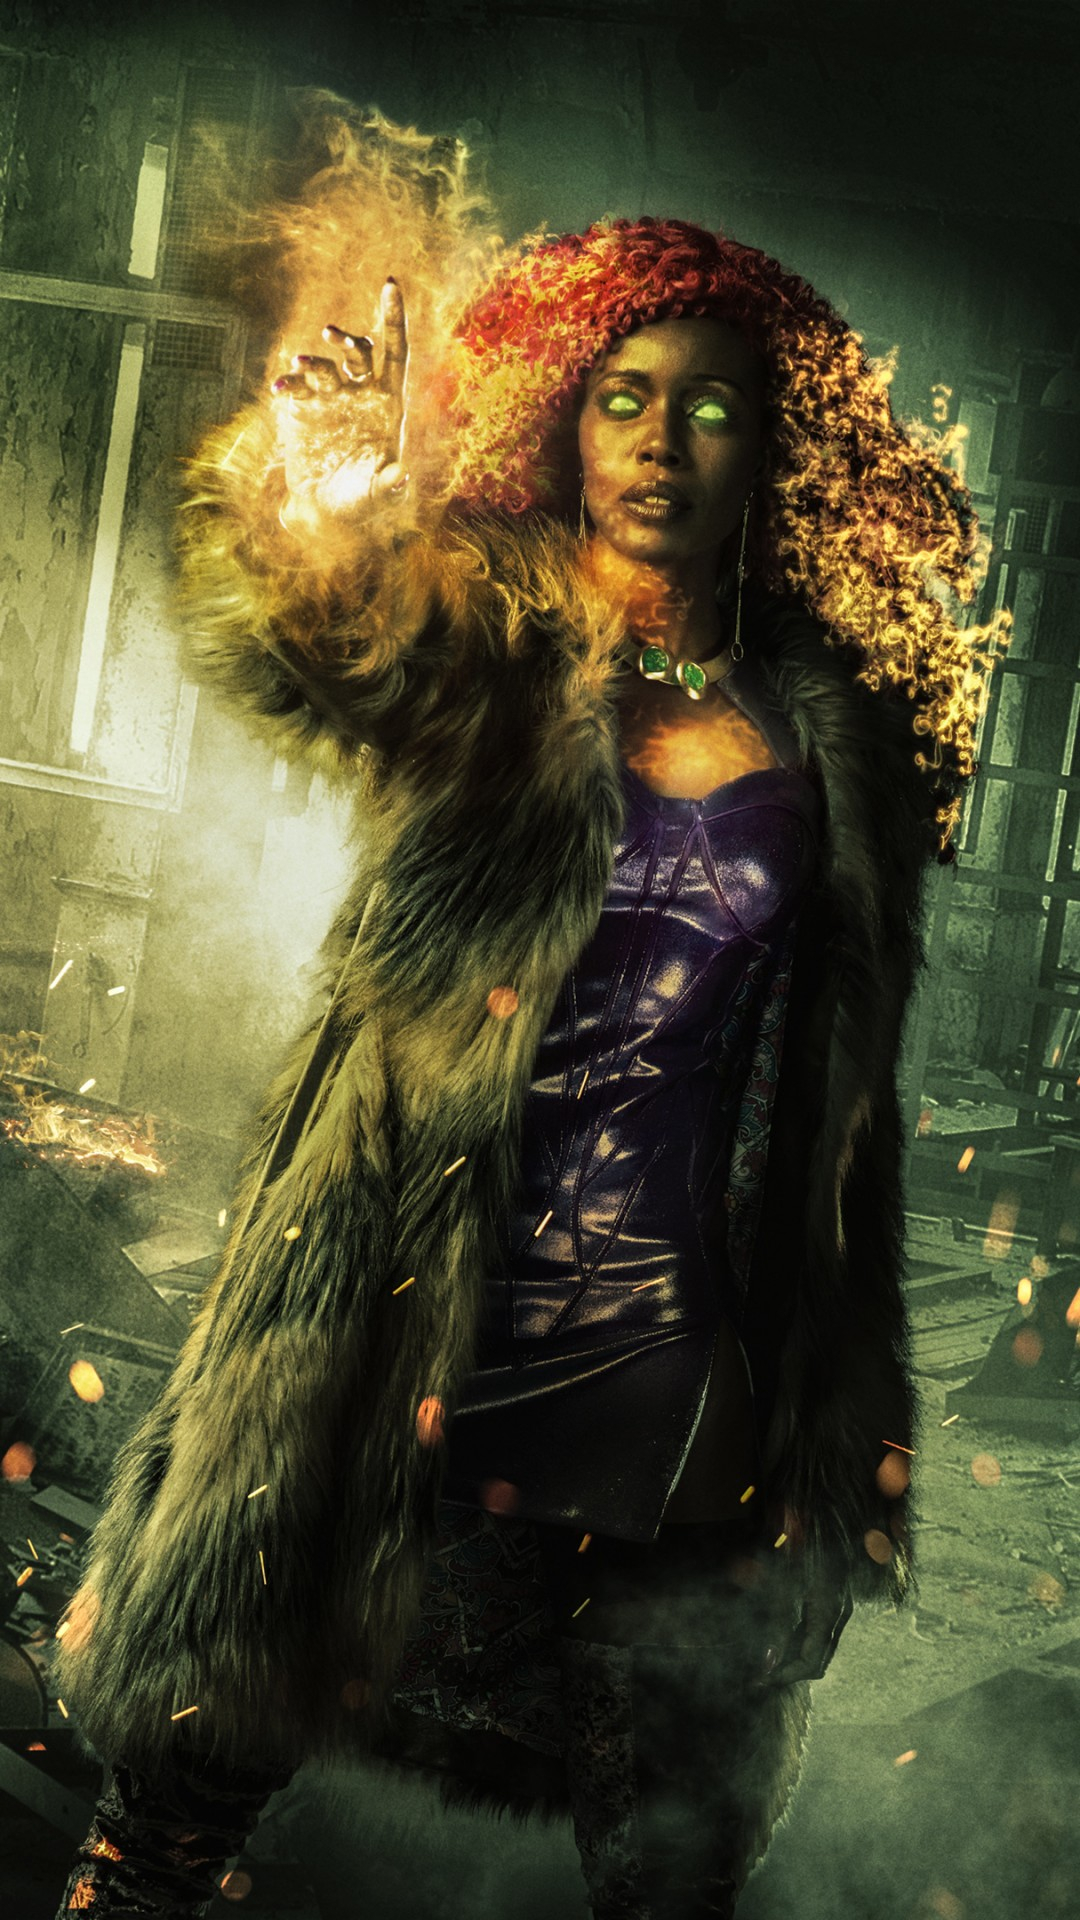 Iphone 6s Wallpaper Dimensions Starfire In Titans Tv Series 4k Wallpapers Hd Wallpapers